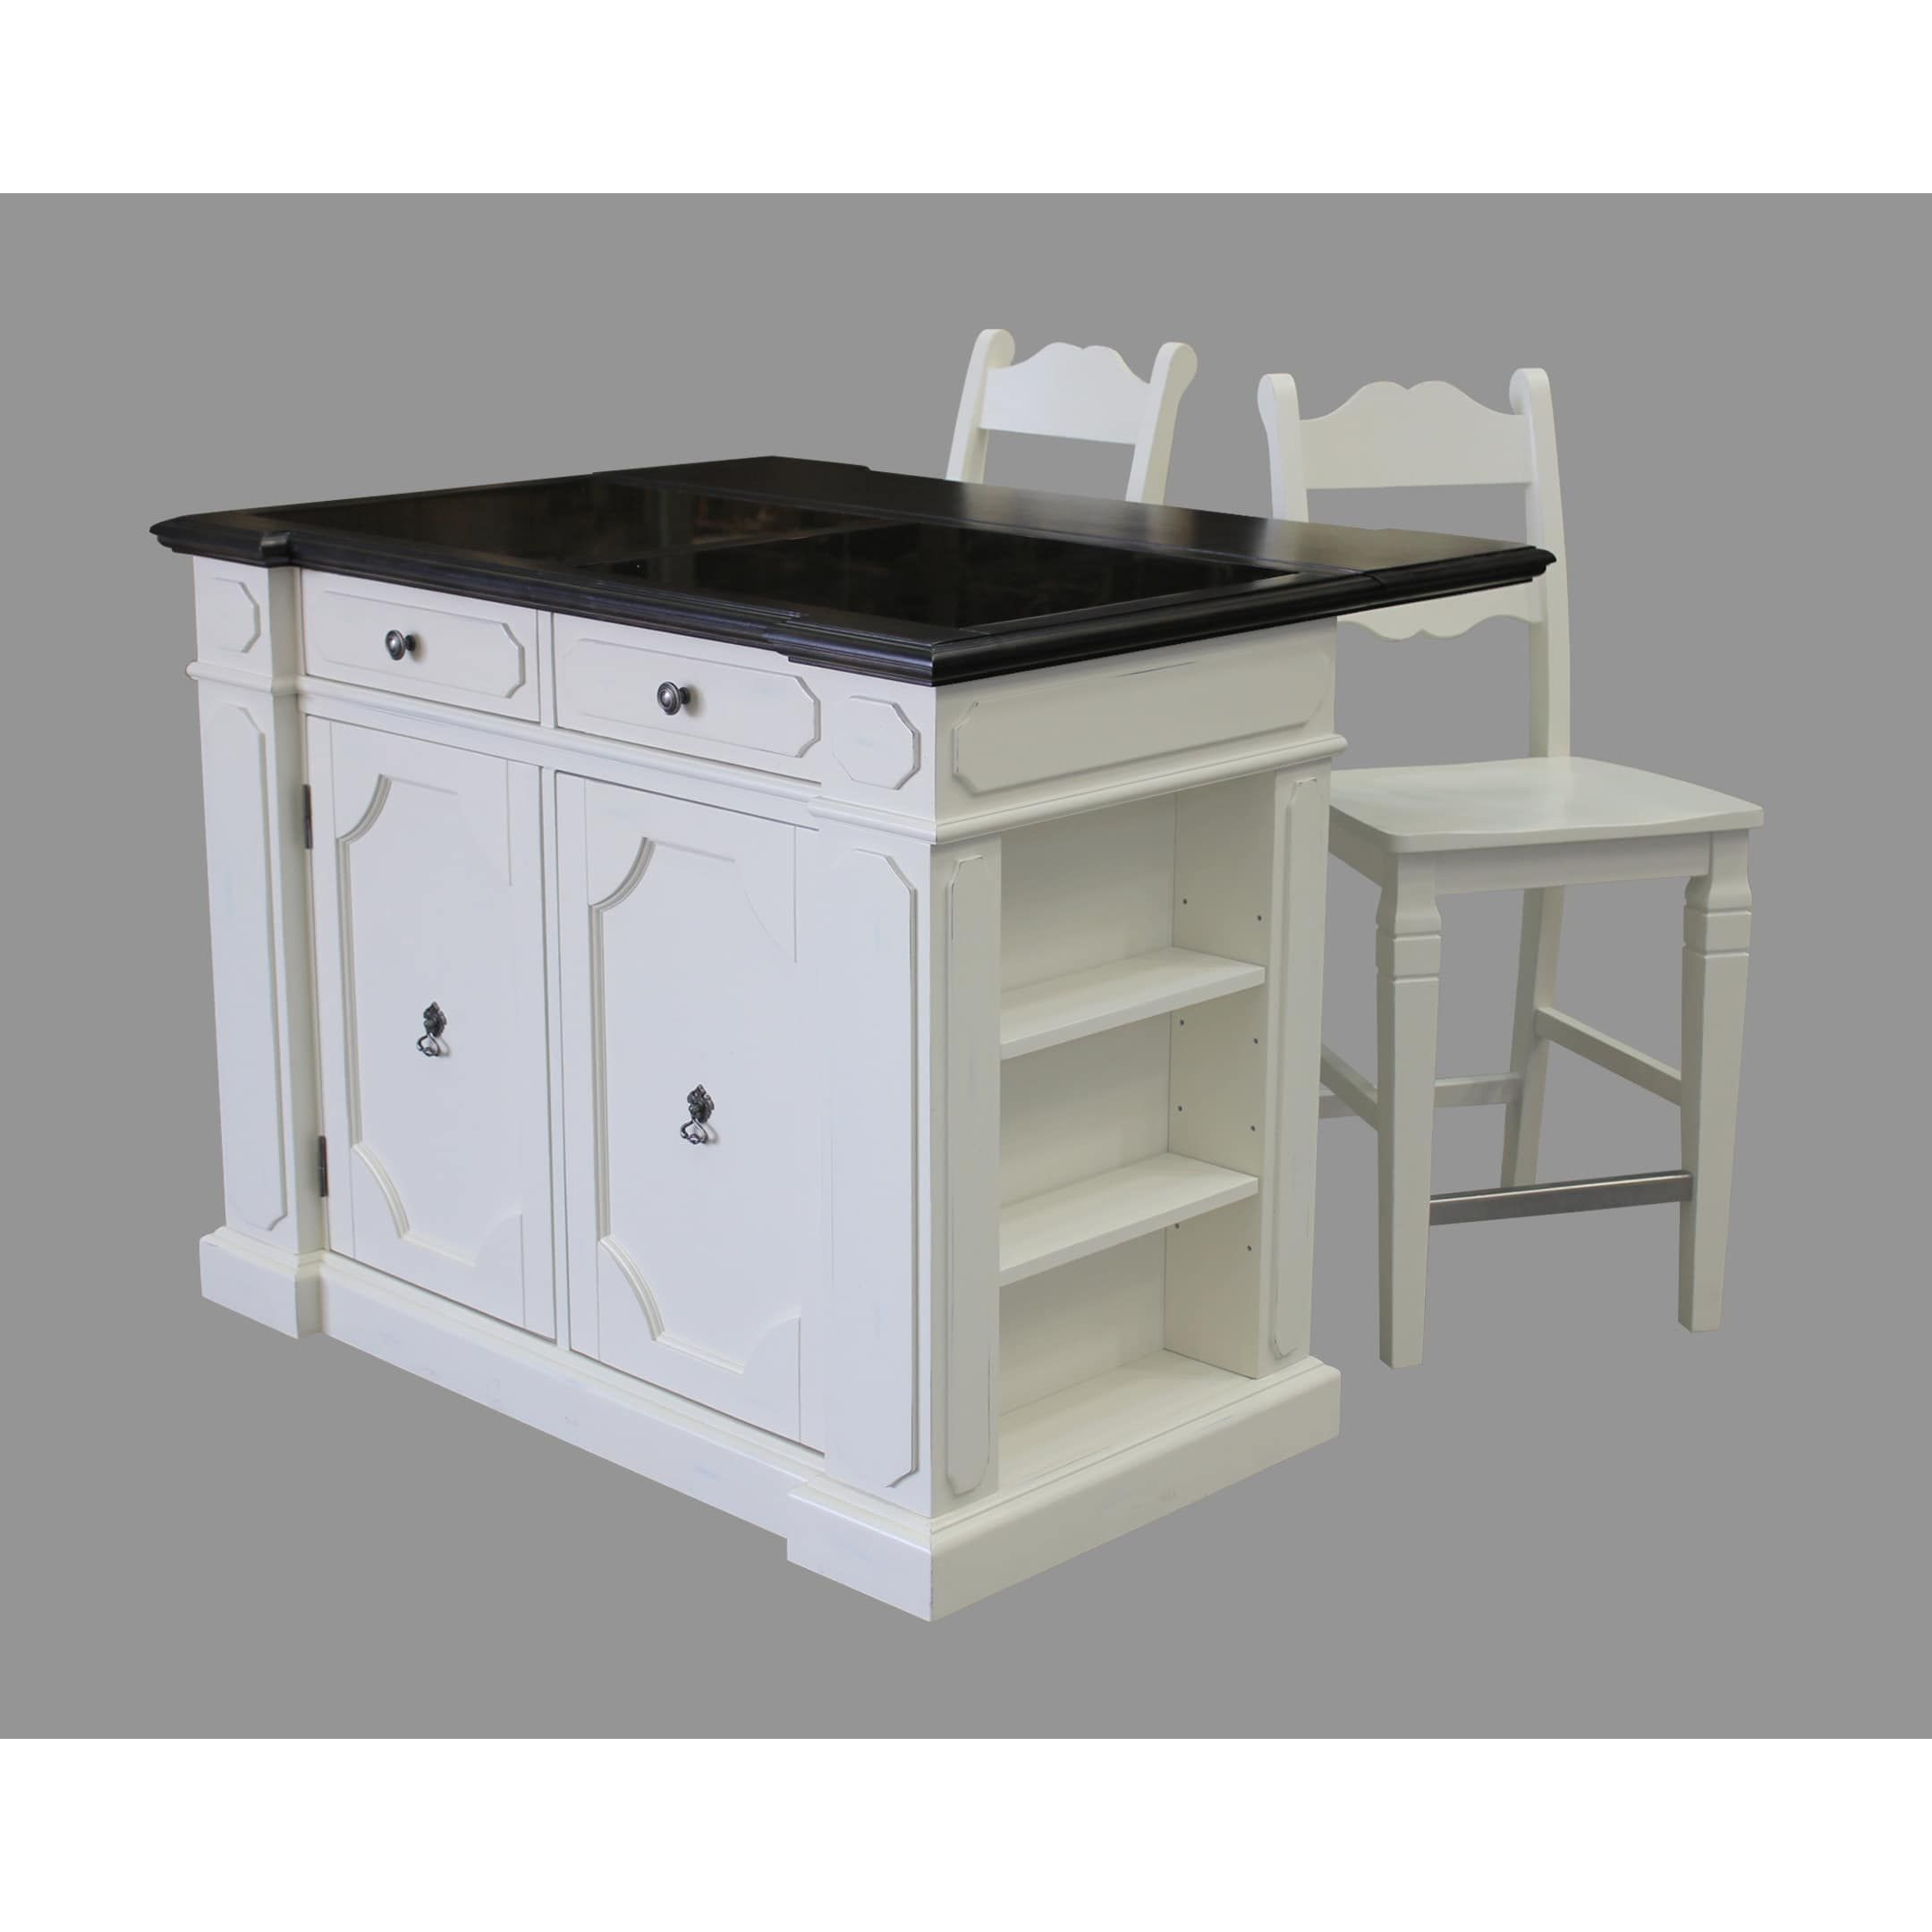 Havenside Home Driftwood Granite Top Kitchen Island With 2